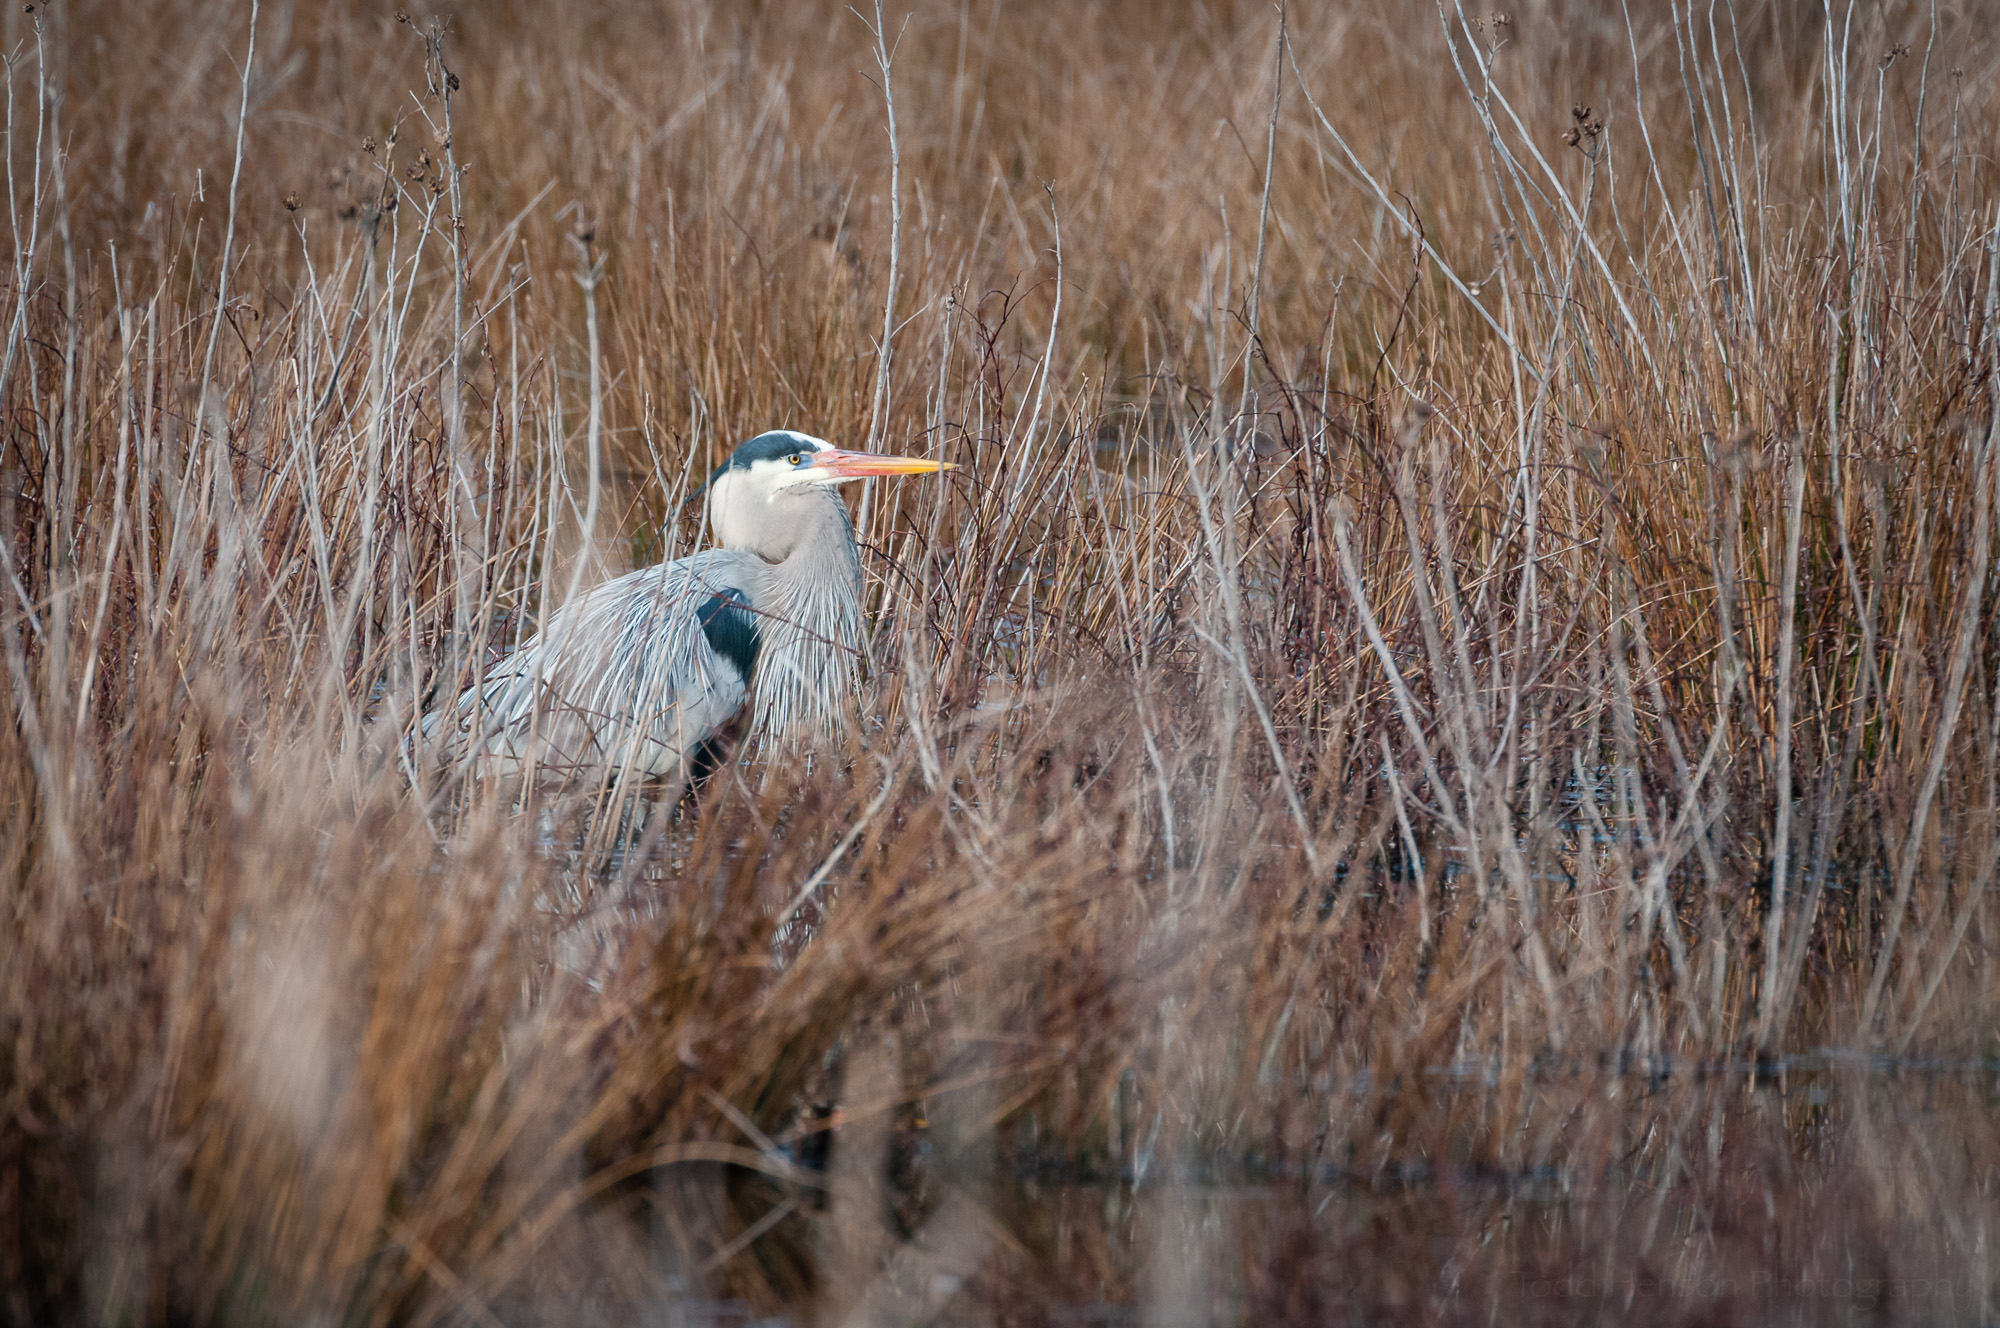 Great Blue Heron in breeding plumage moves through wetlands brush